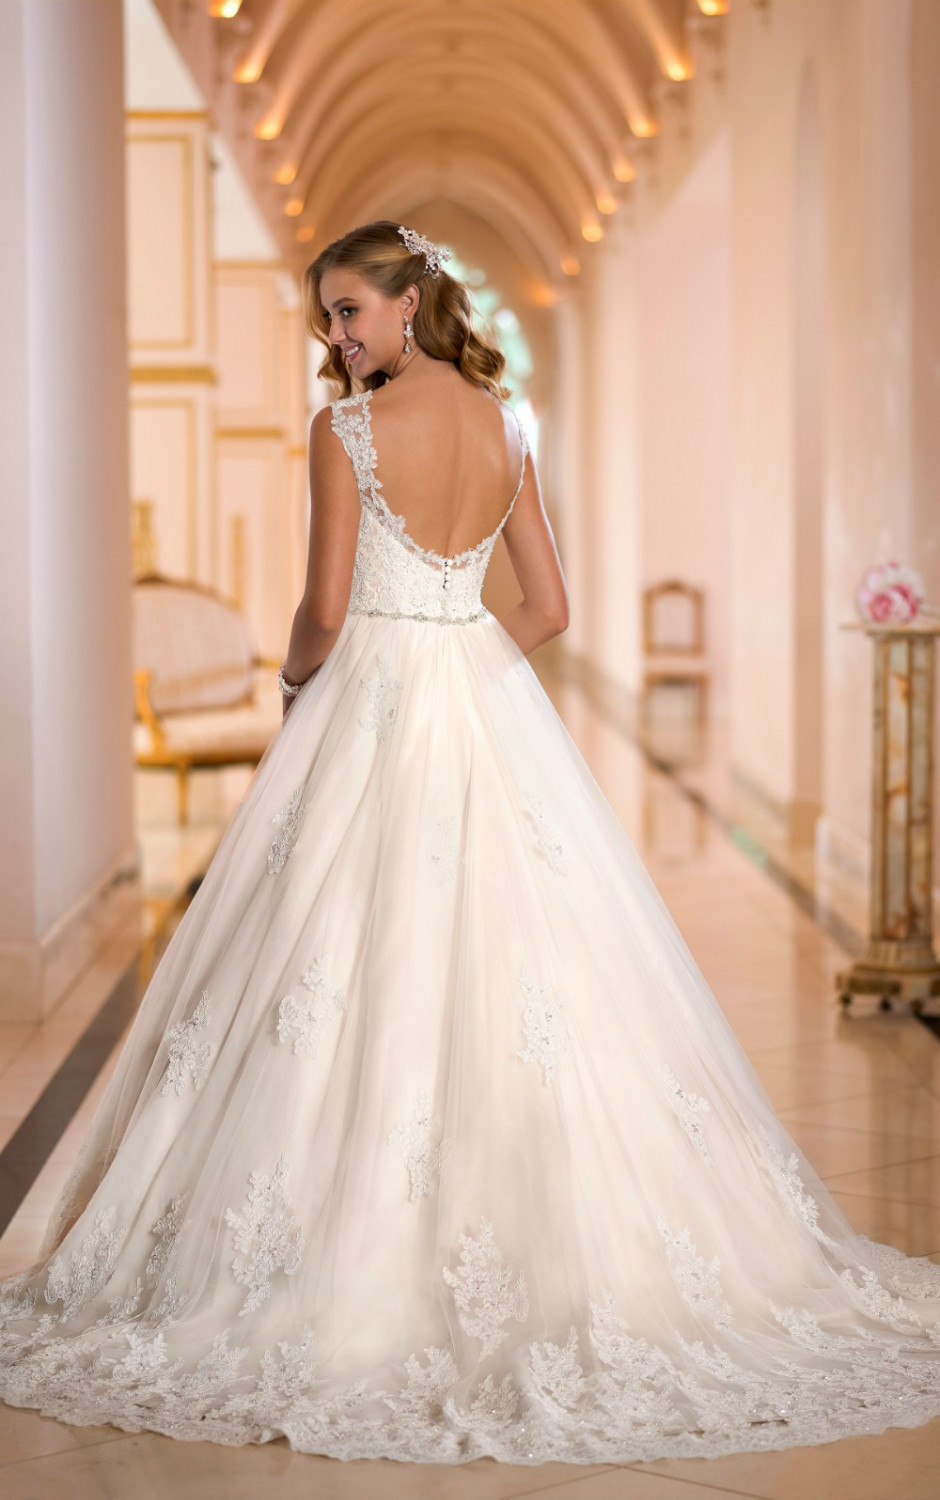 For Brides Looking Wedding Dresses With Lace This Striking Ballgown From Stella York Blooms Whimsy A Line Dress In